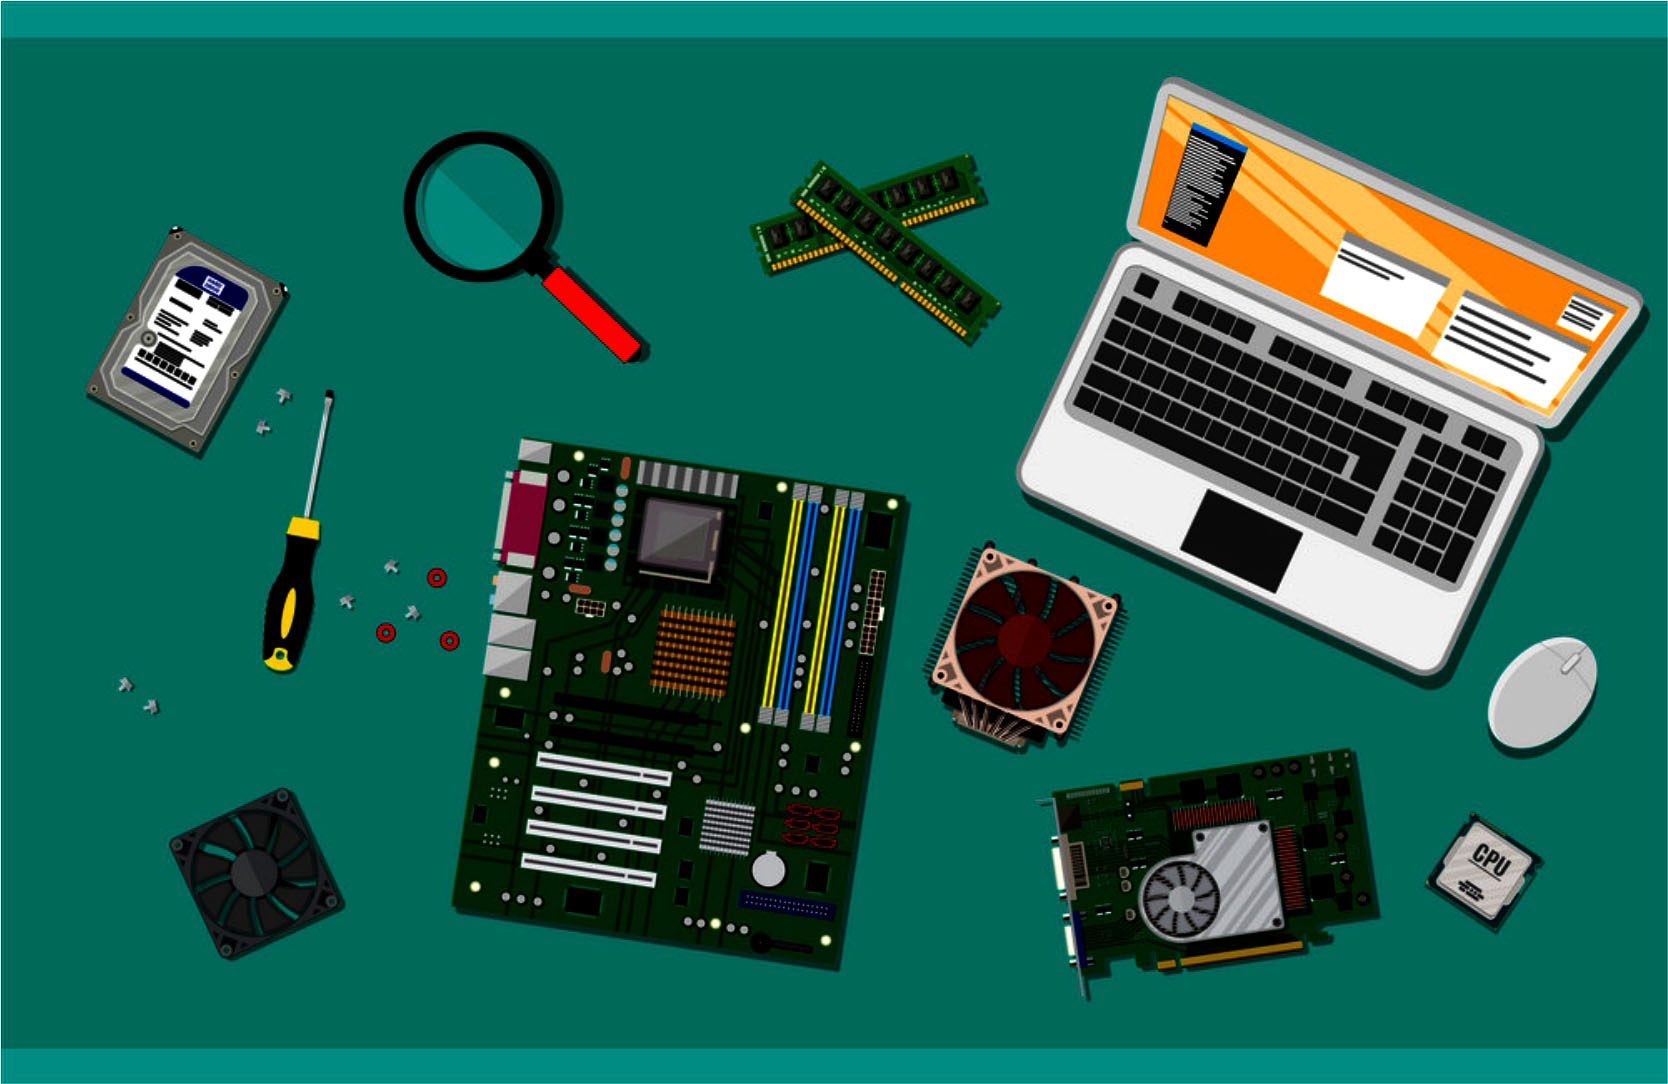 Computer Hardware & Networking Course